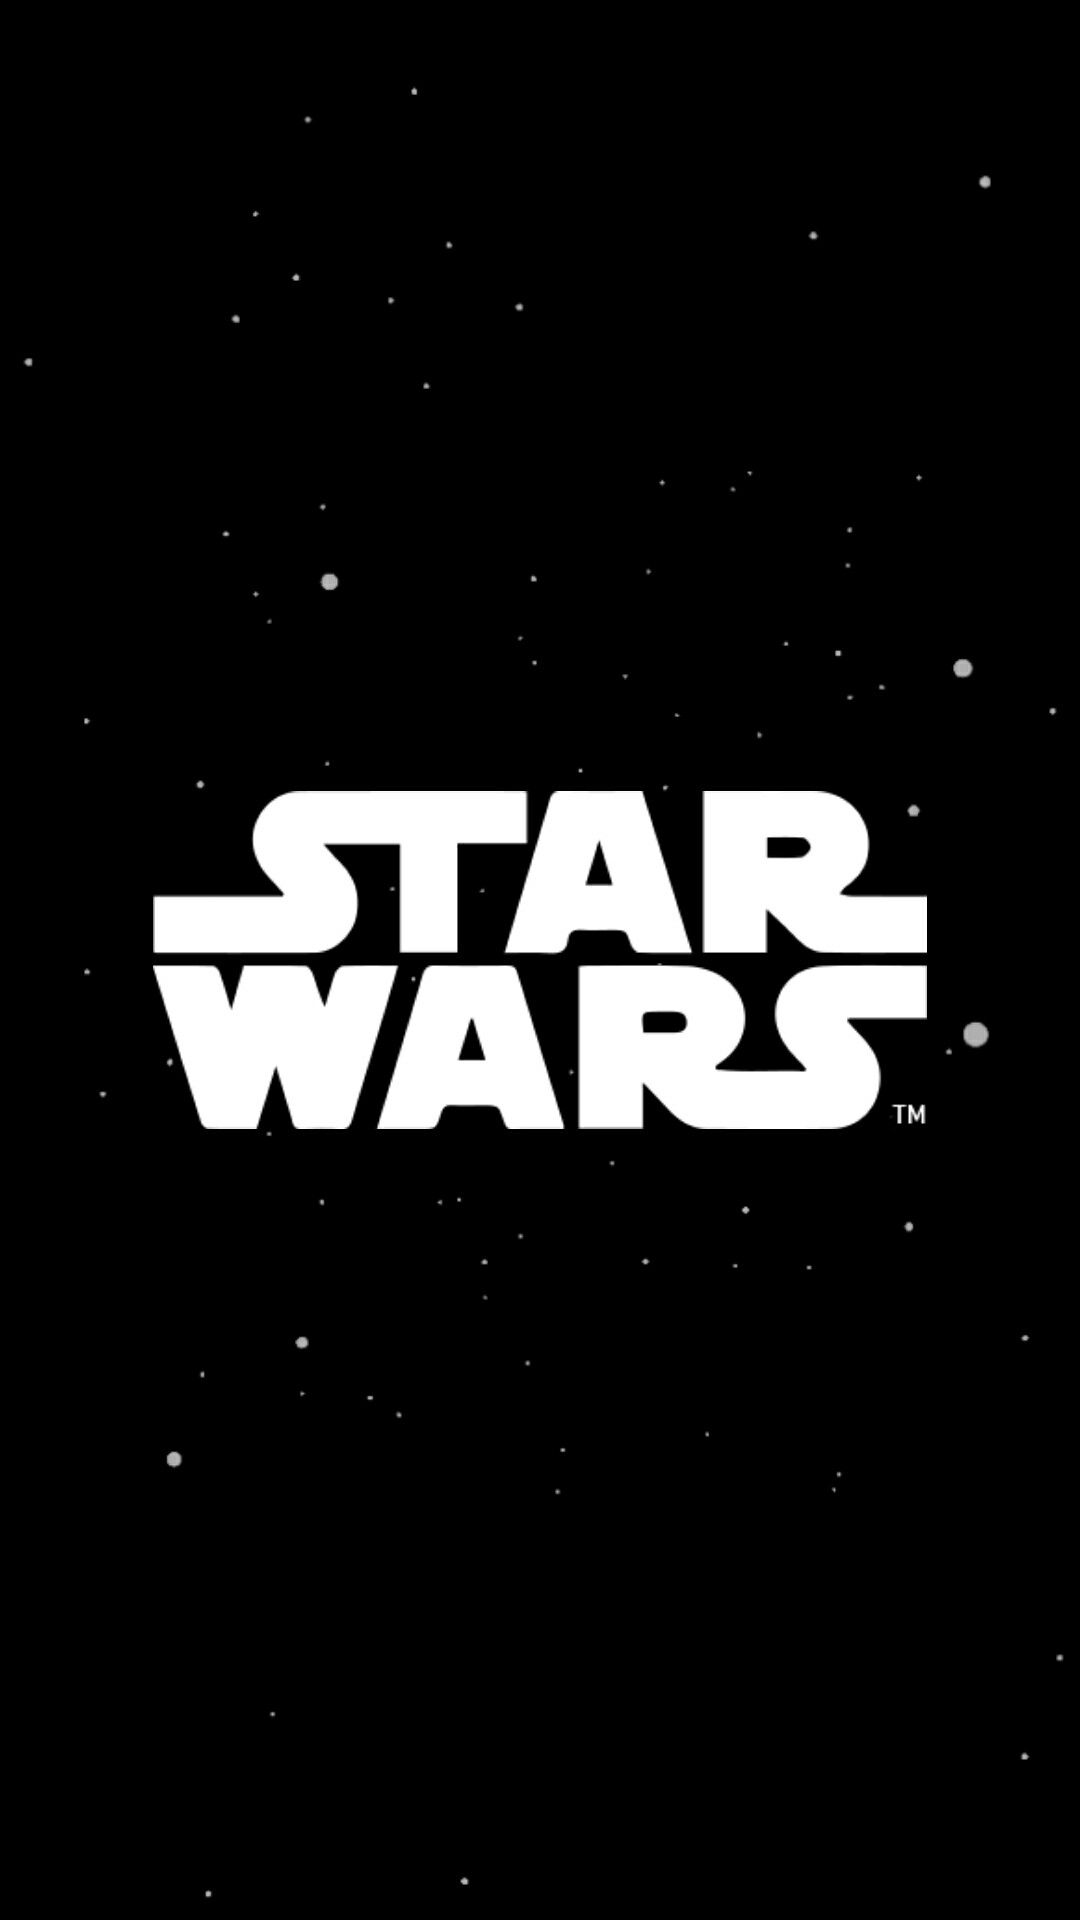 Star Wars Wallpaper Papel De Parede Star Wars Fundos Star Wars Star Wars